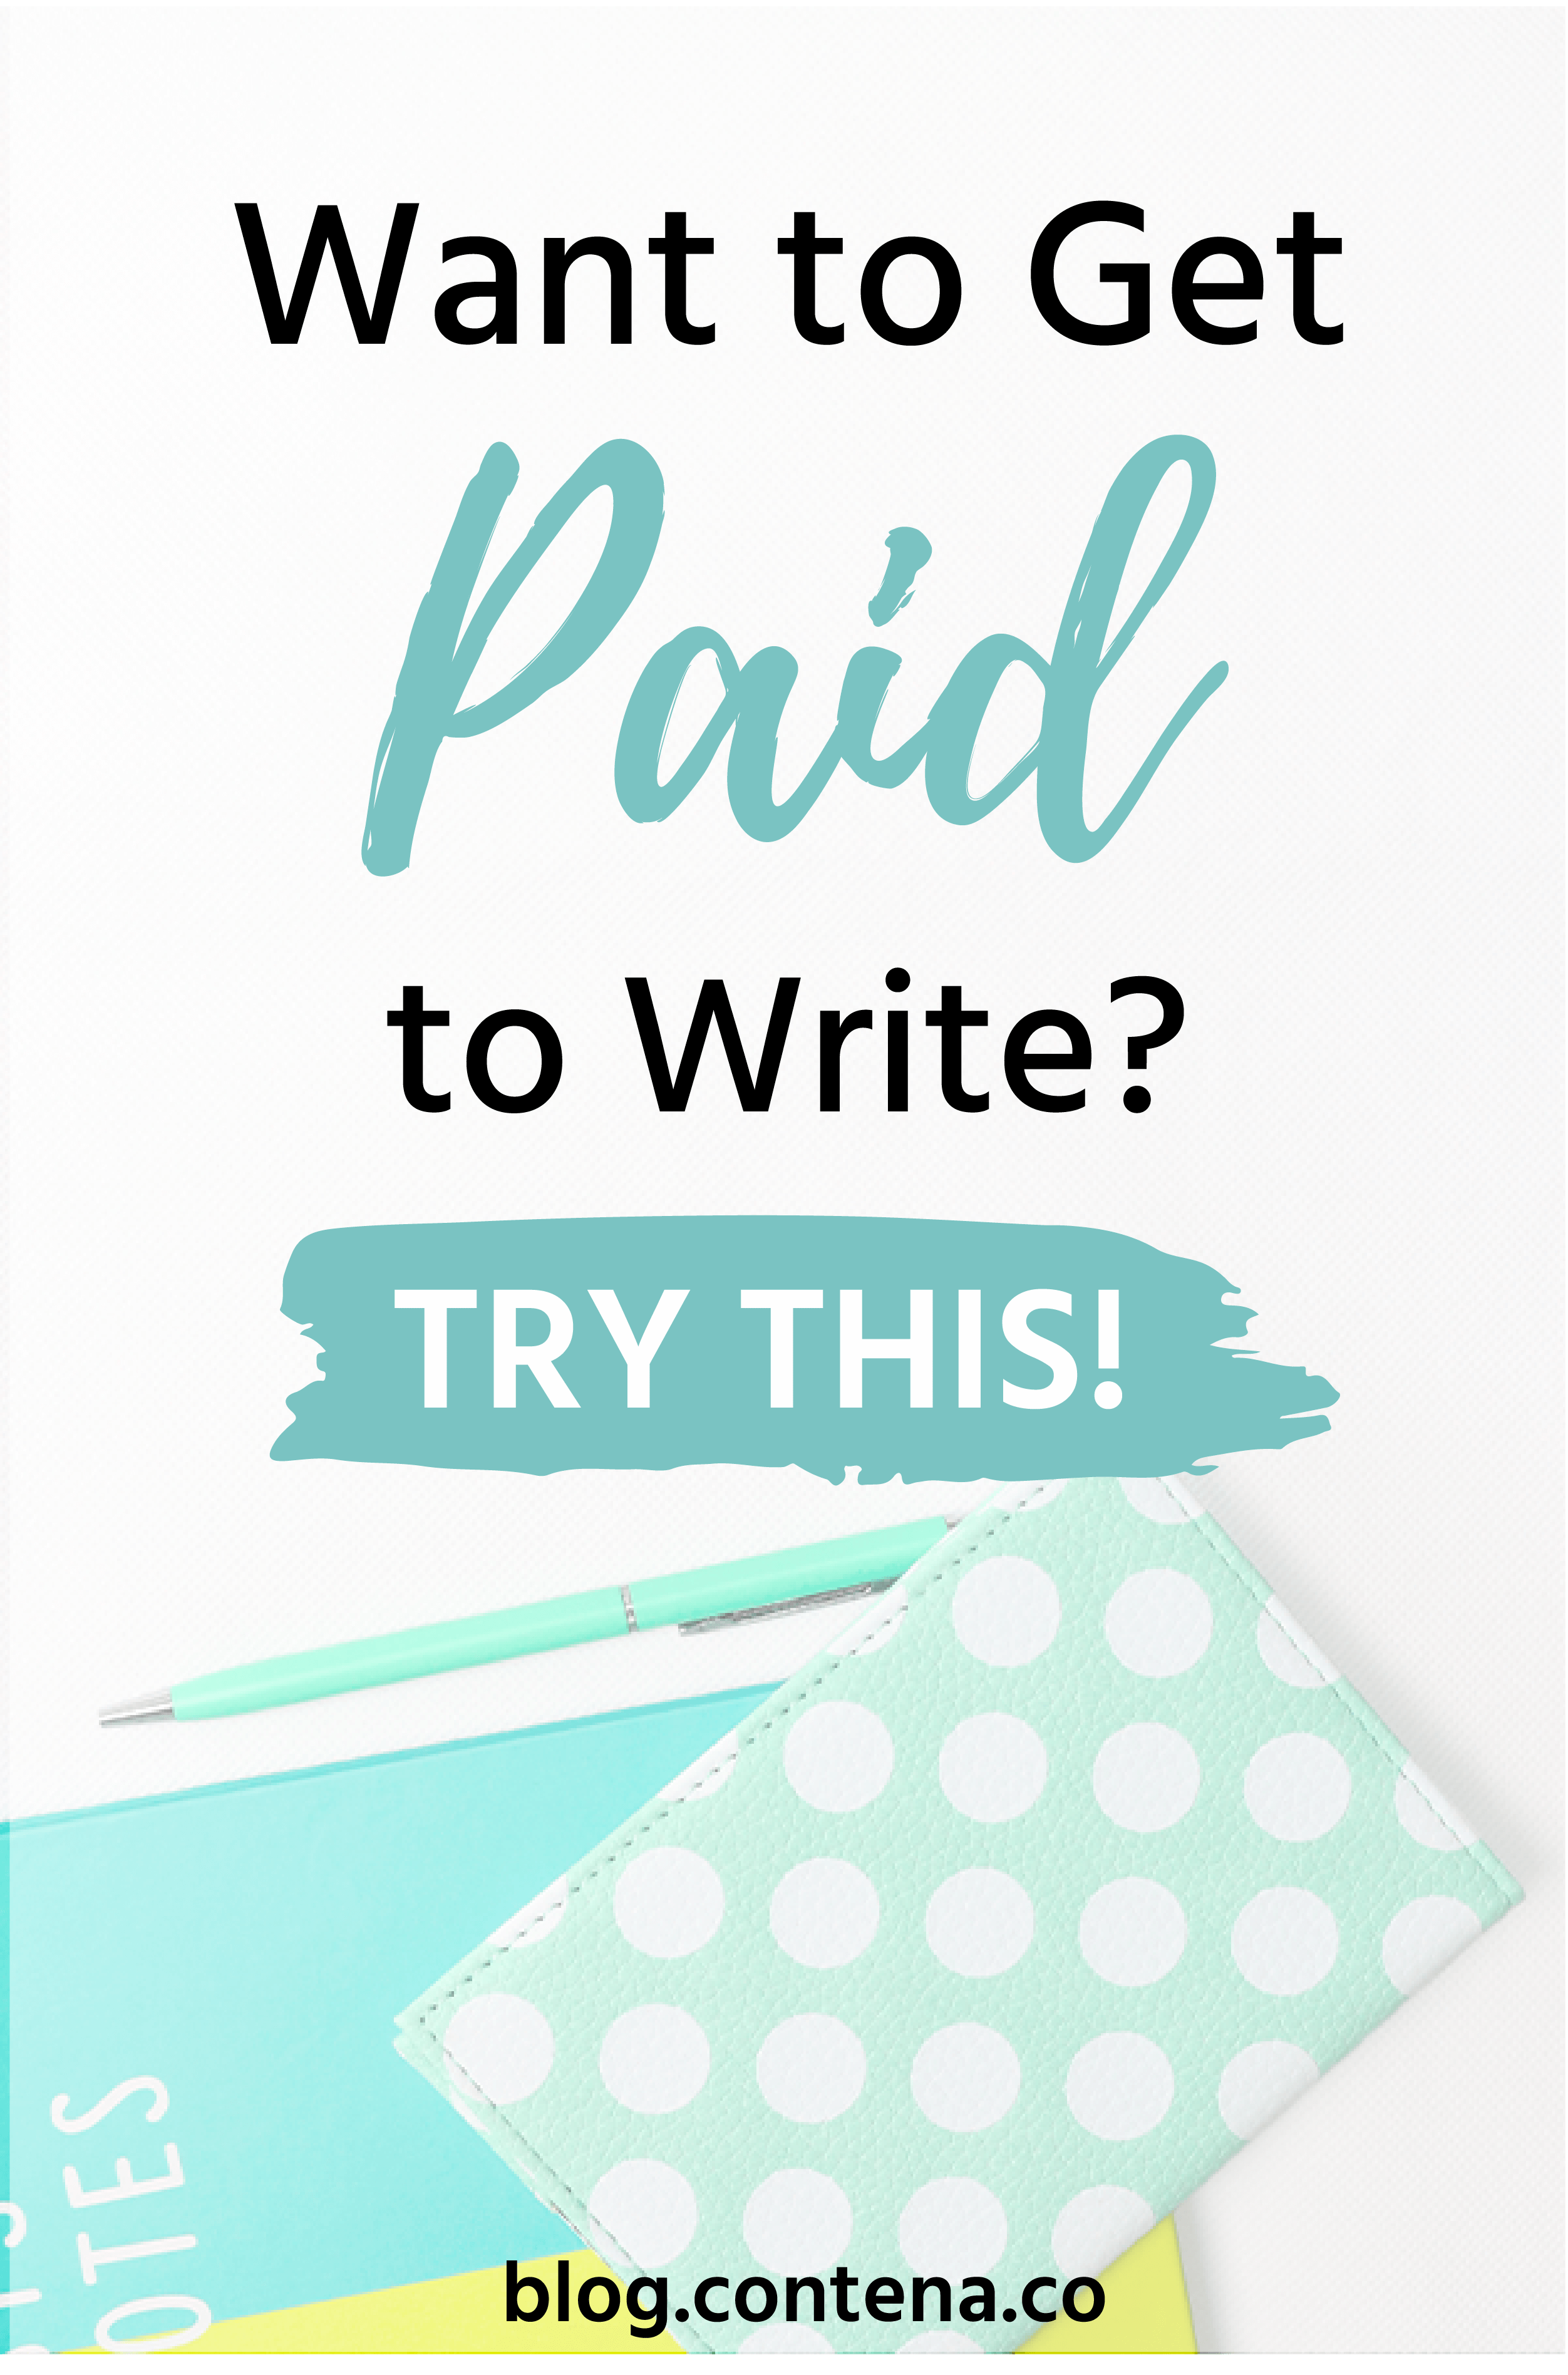 What Can I Get Paid to Write About? - Contena Community